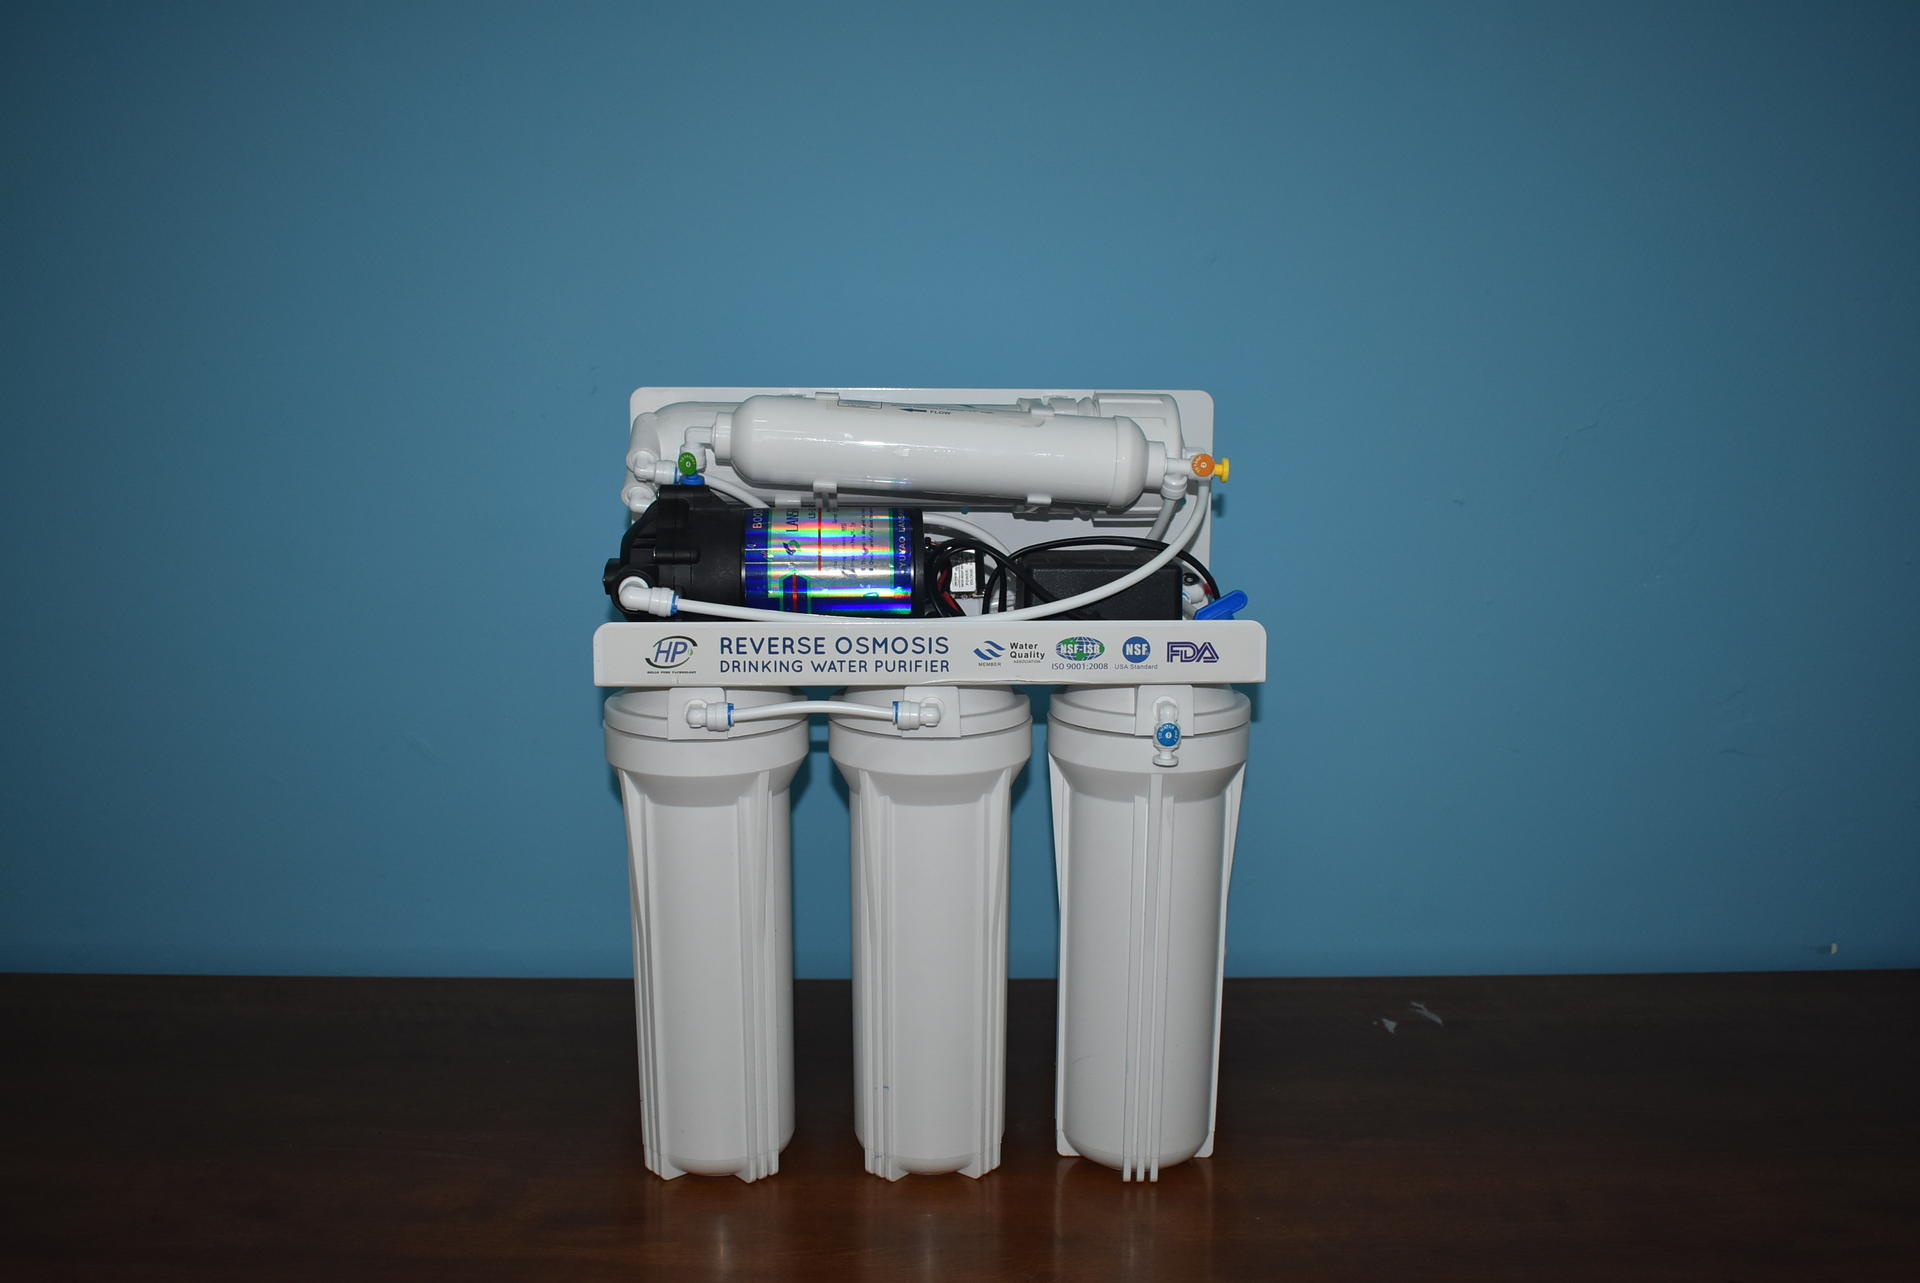 Home reverse osmosis wall mounted water purifier